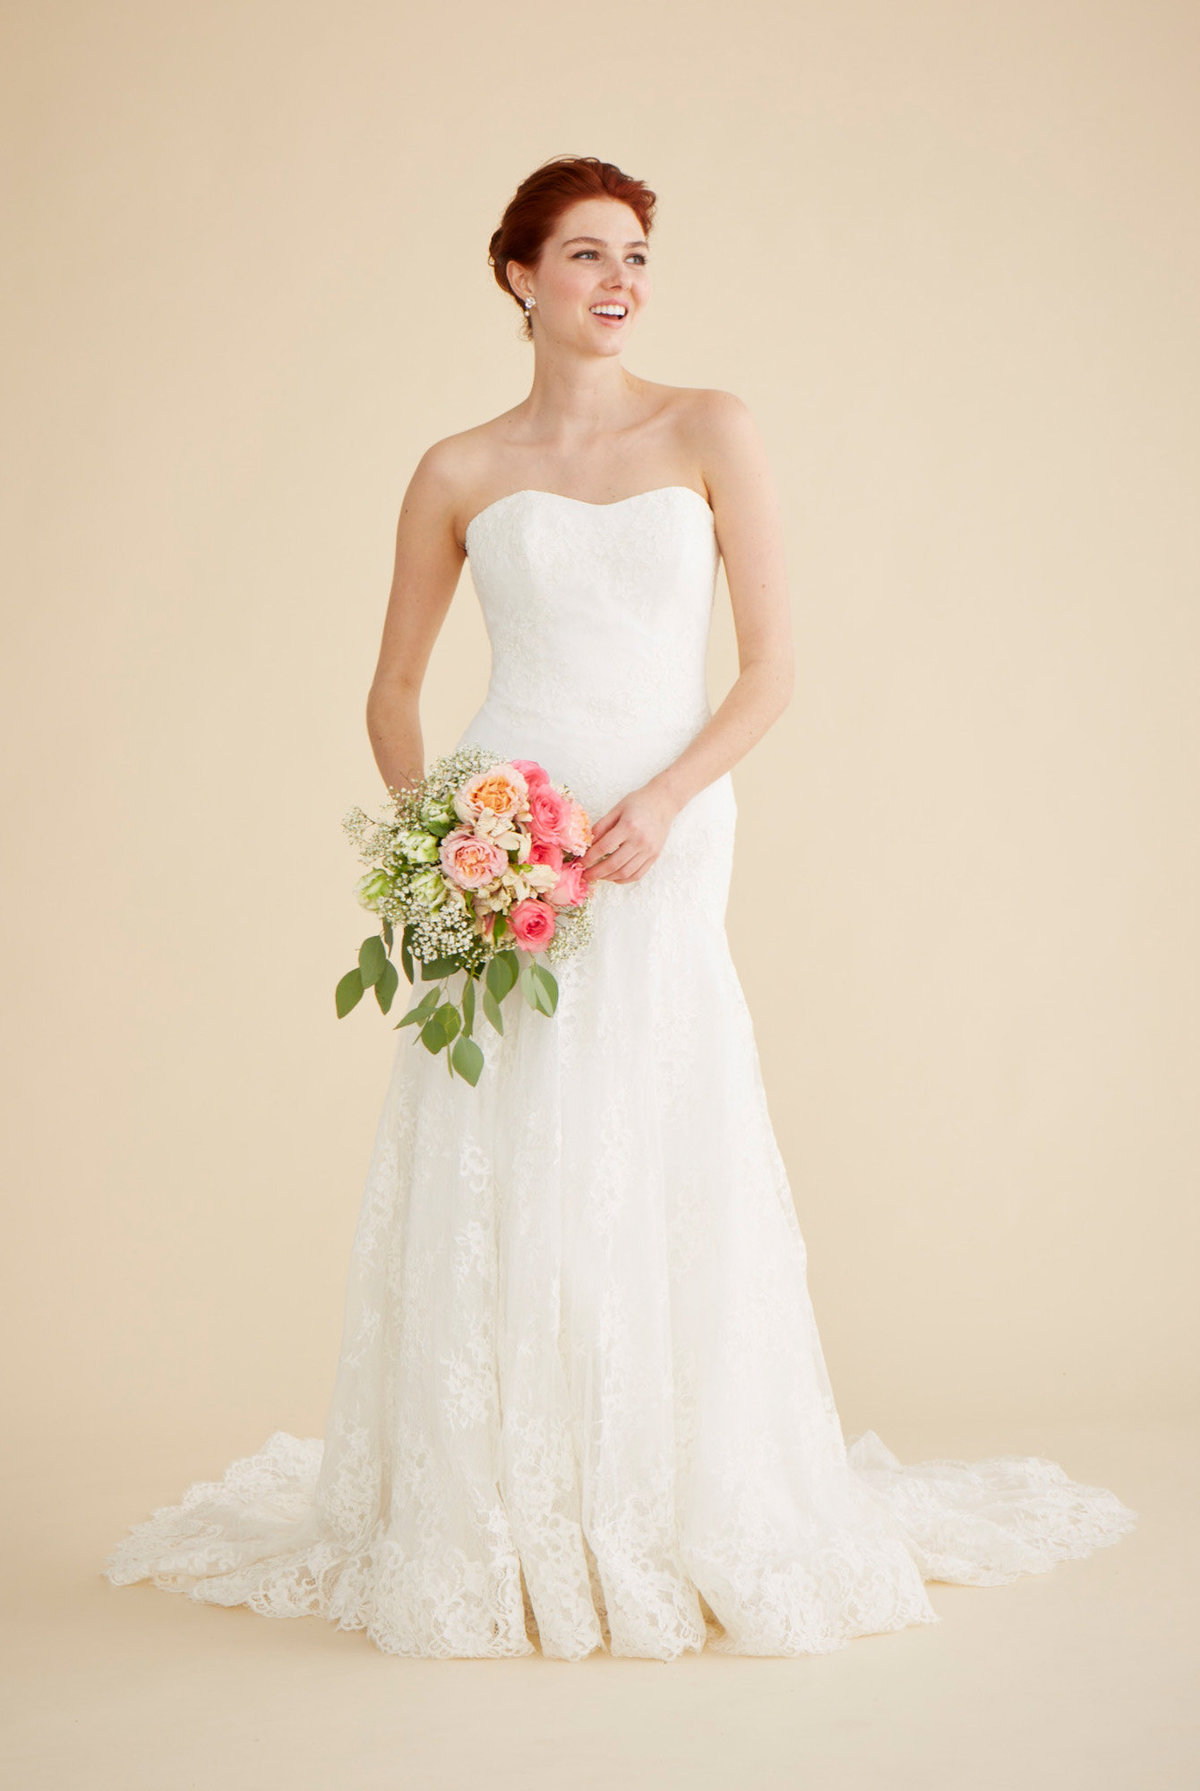 Lea-Ann-Belter-Bridal-Trunk-Show-Jessica-Haley-Bridal-Photo-004